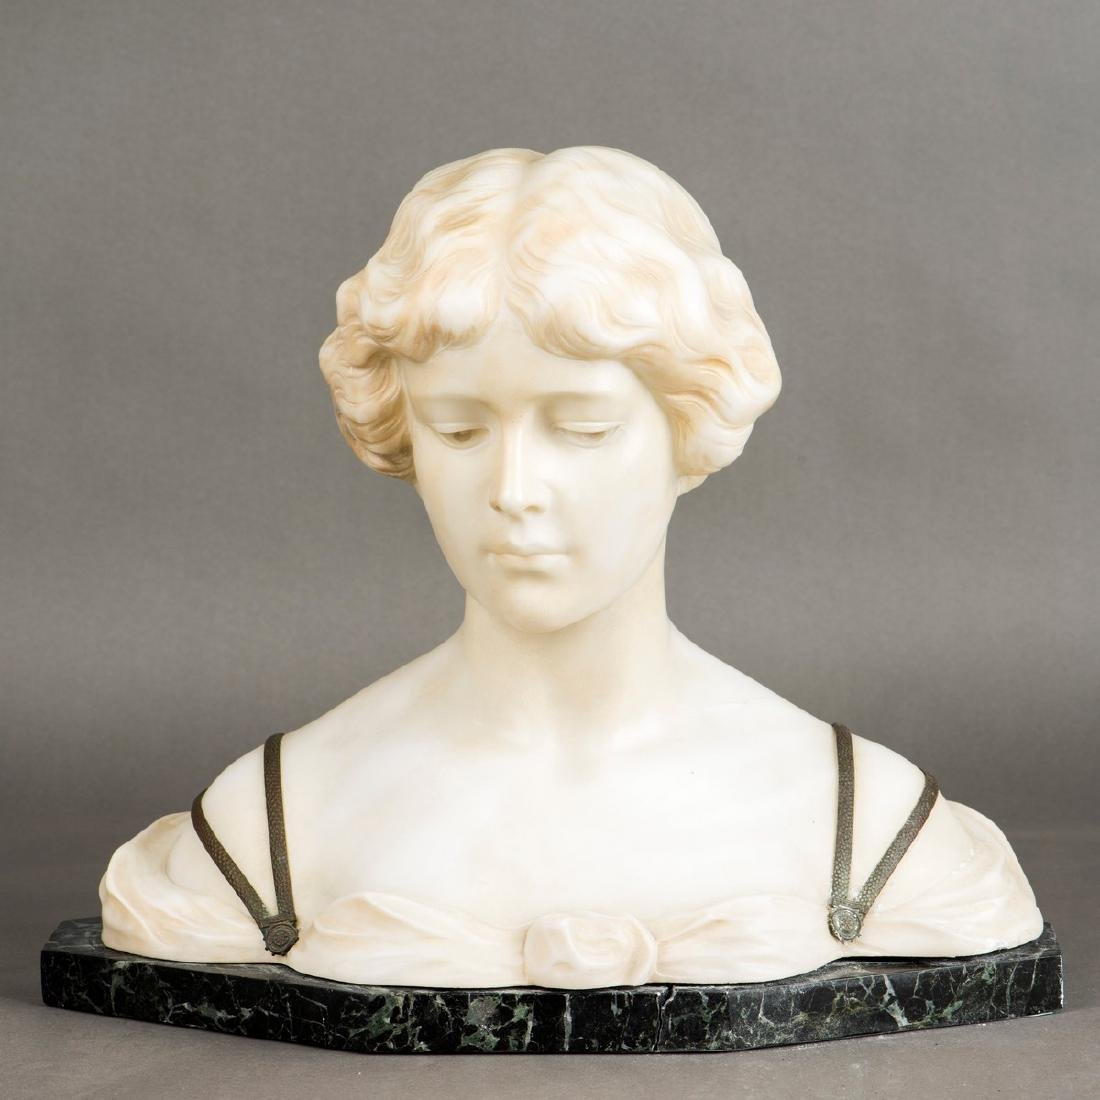 ART DECO ALABASTER, BRONZE YOUNG WOMAN BUST